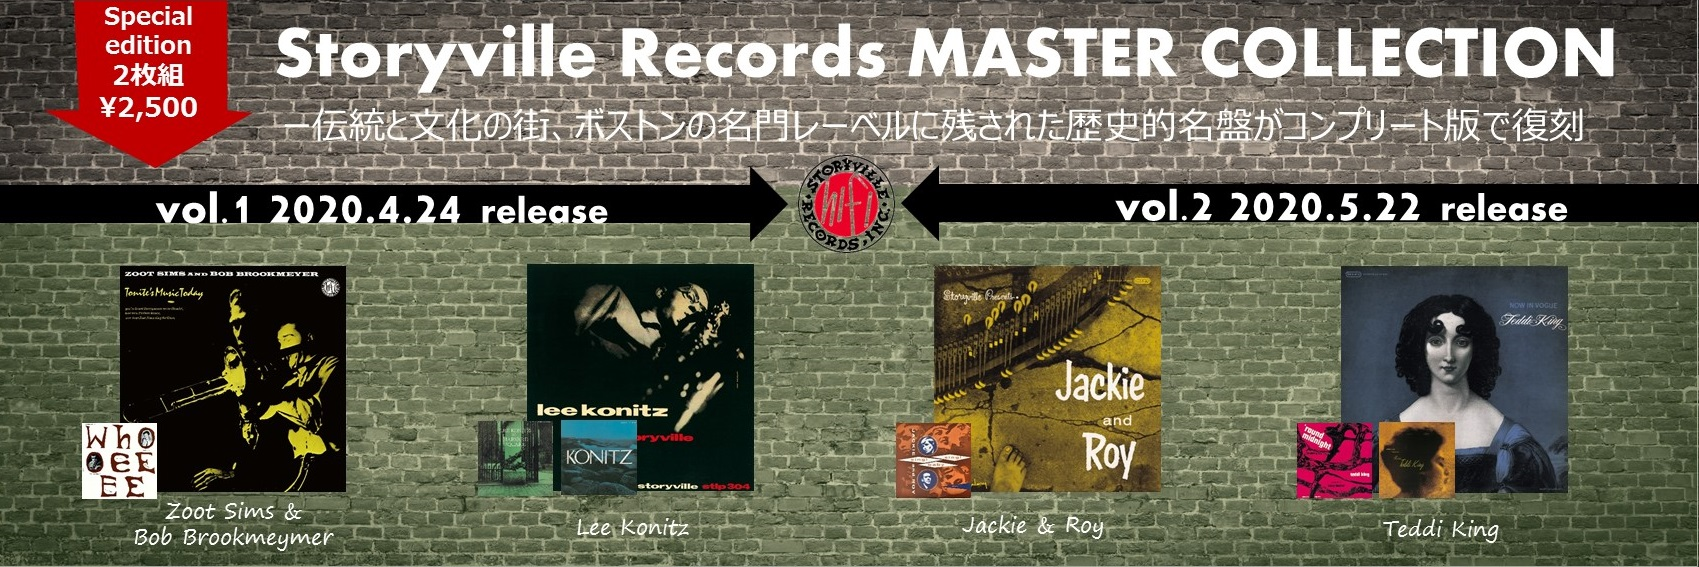 Storyville Master Collection